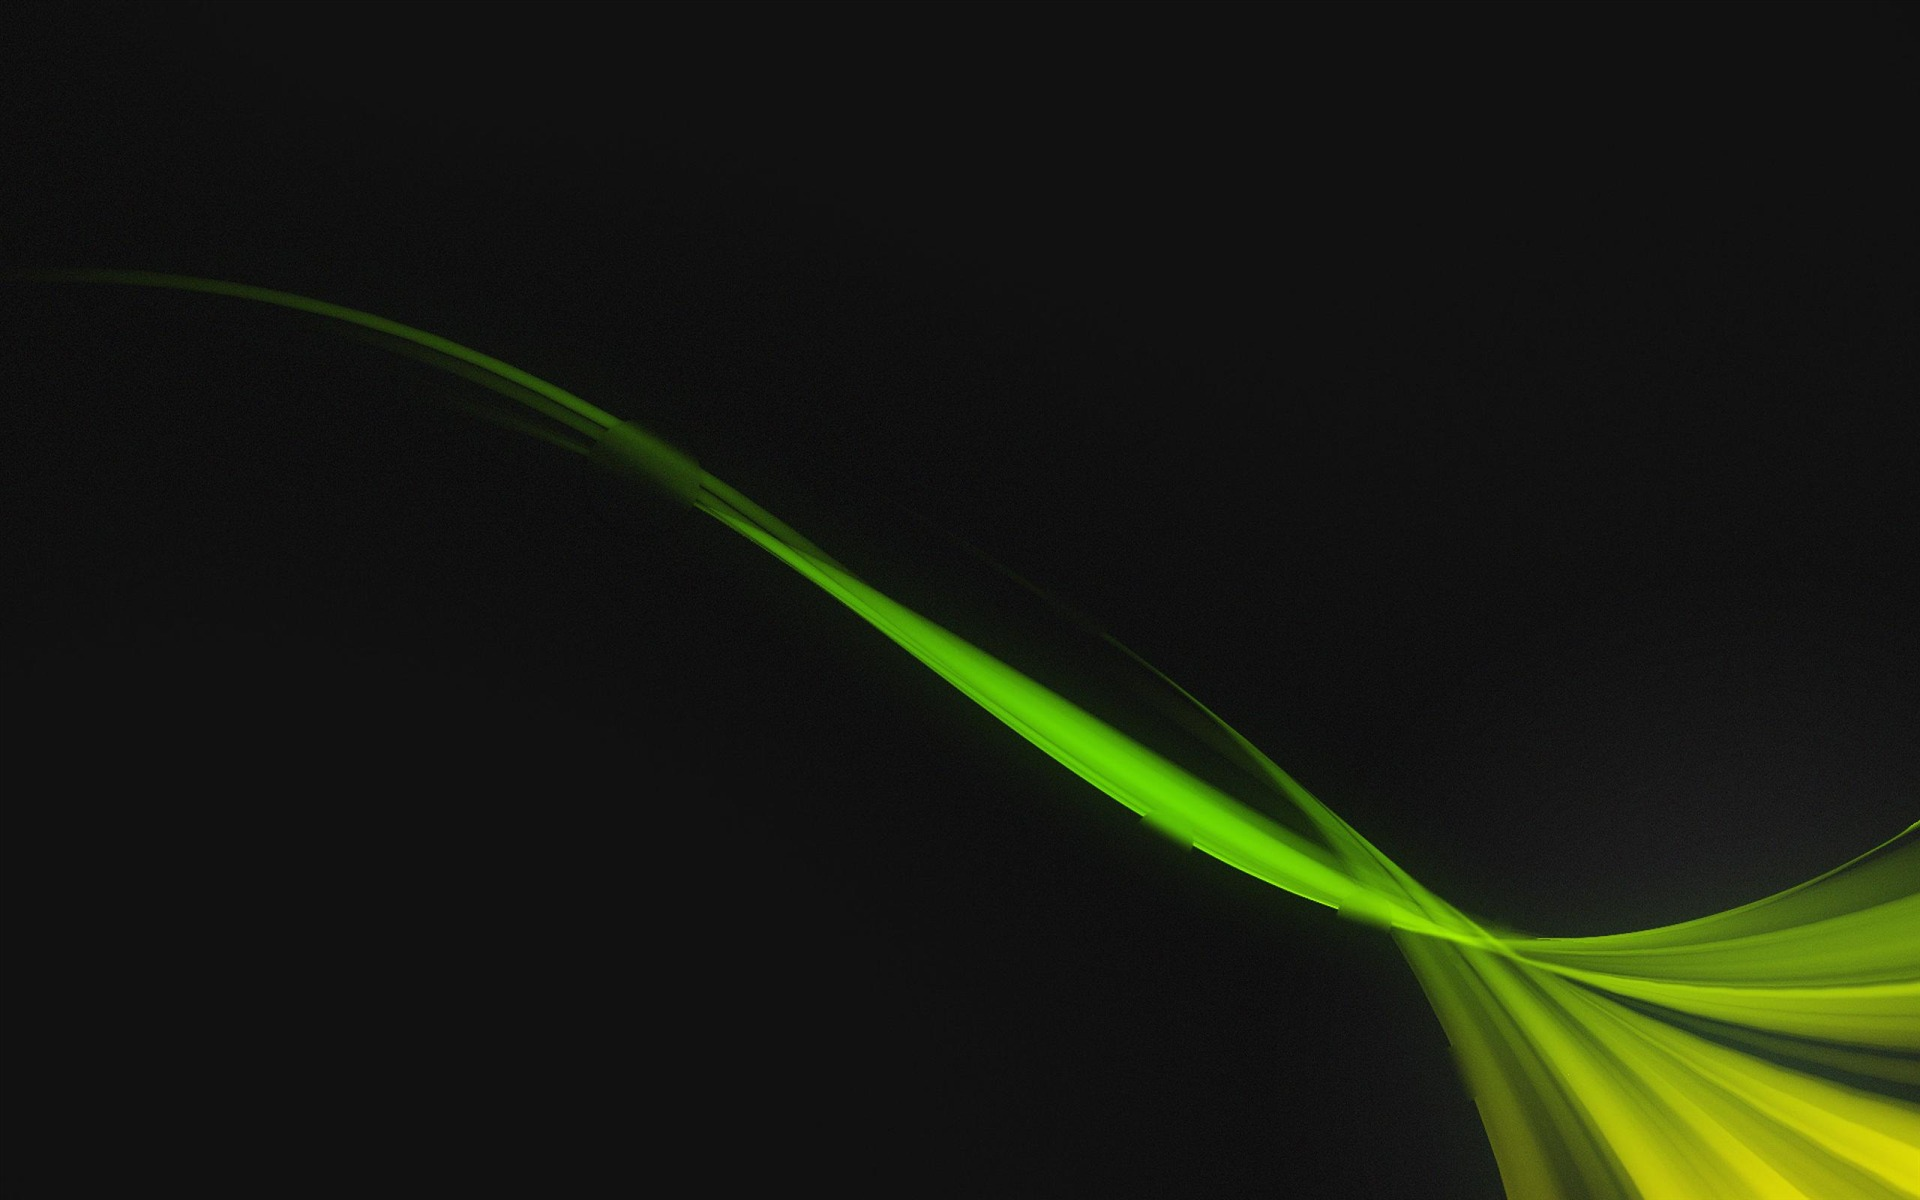 Green Black Wave-Abstract art design wallpaper-1920x1200 ...